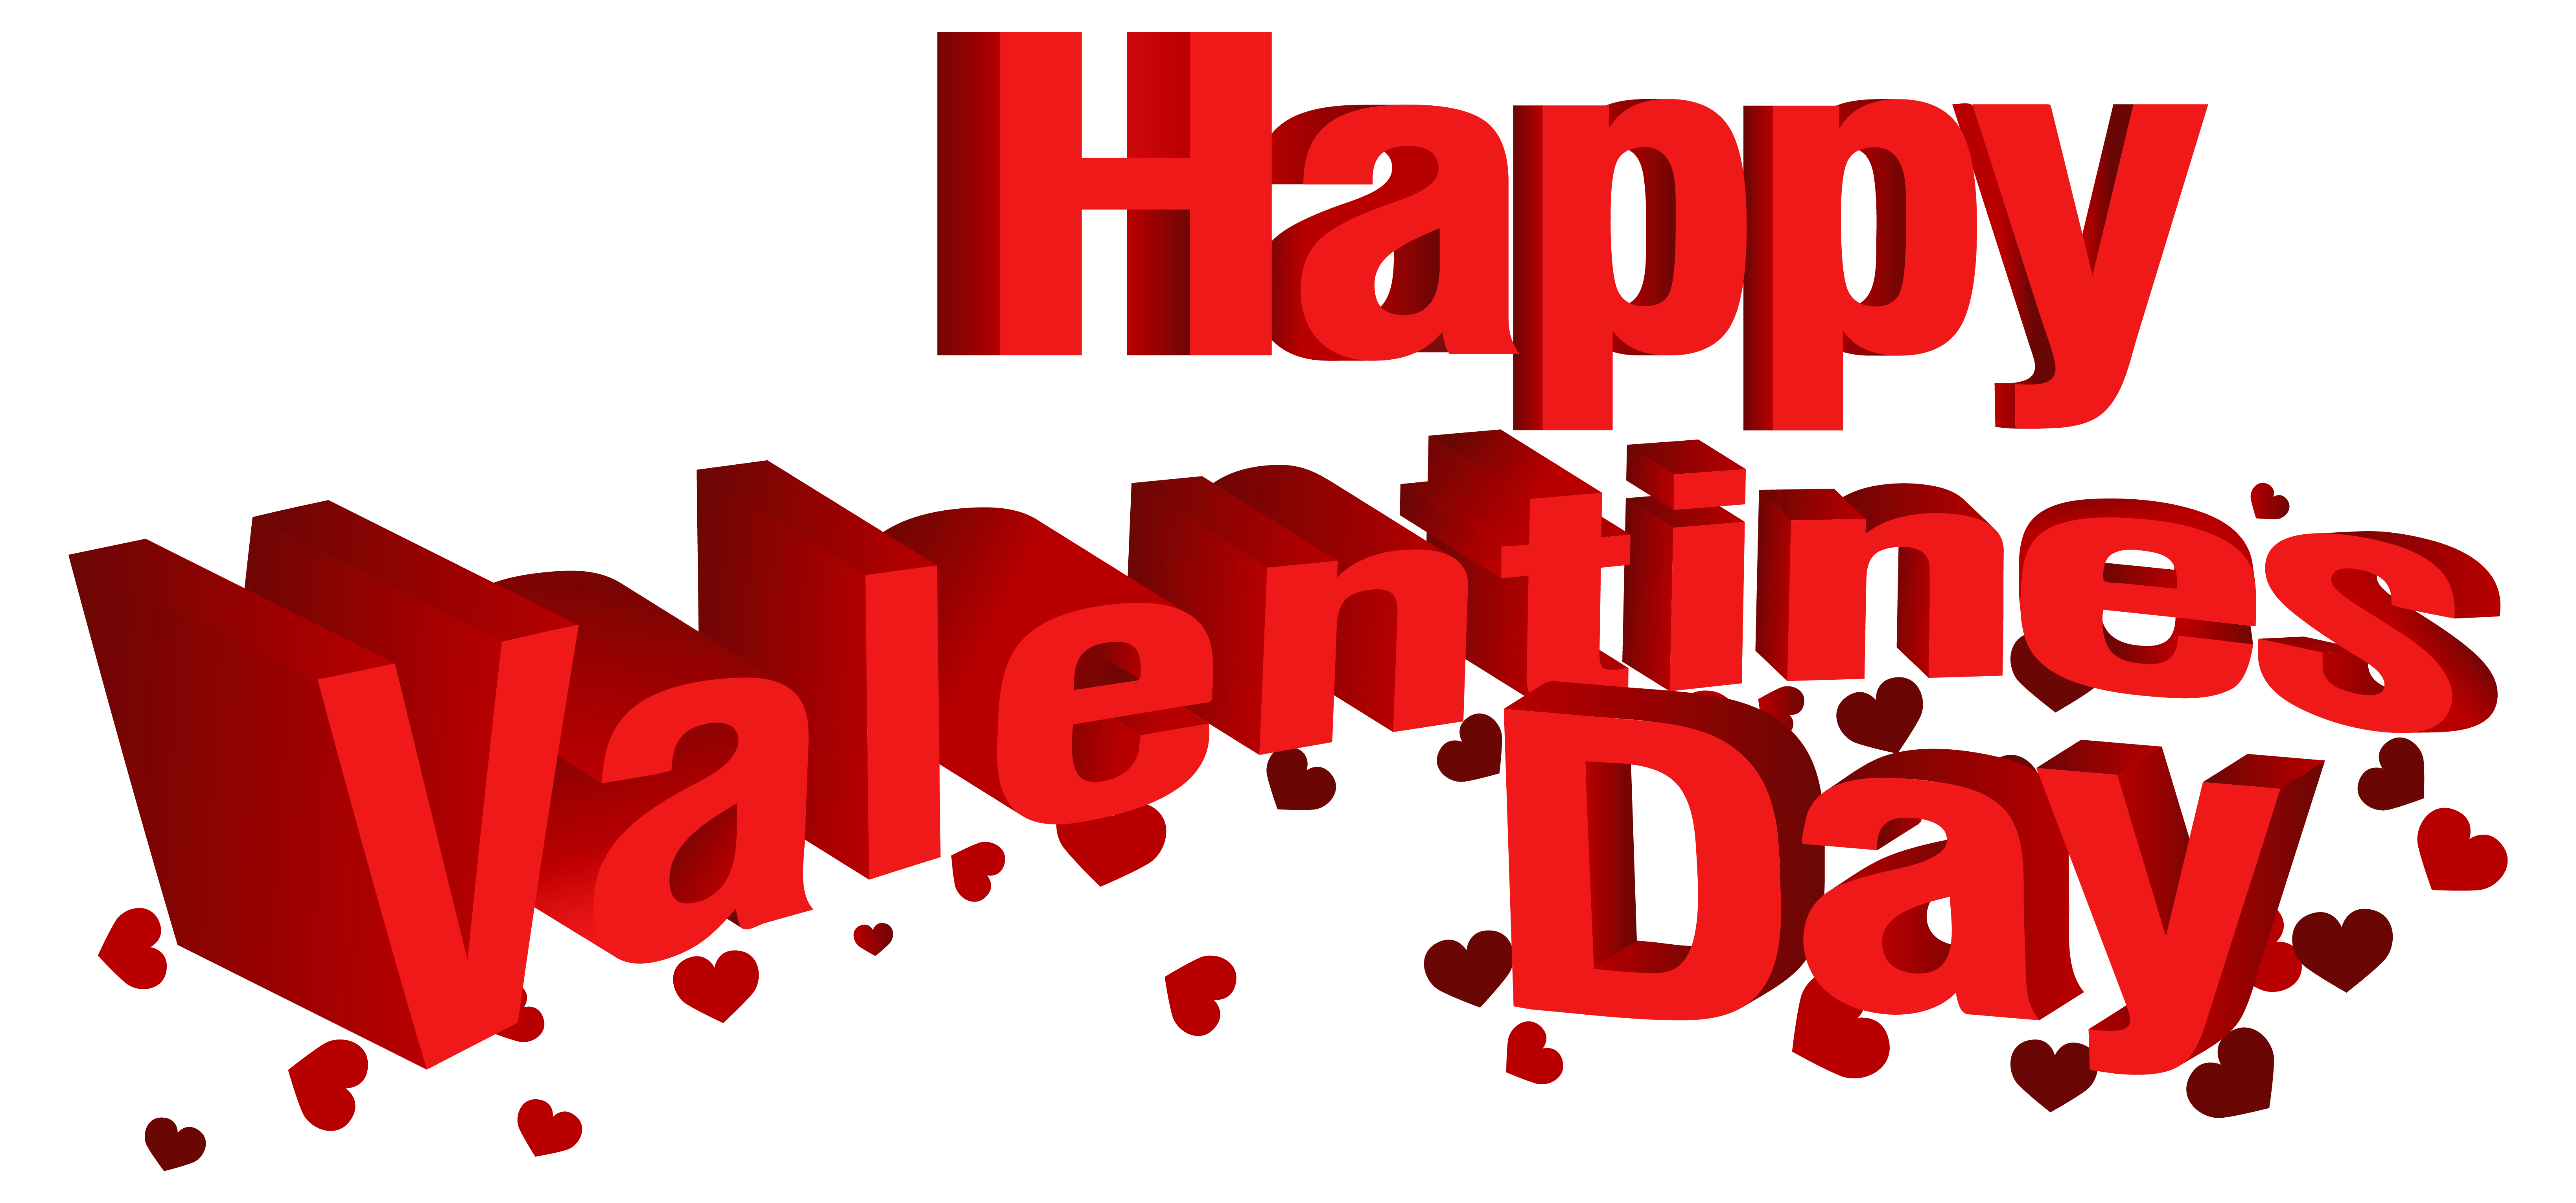 Happy Valentines Day HD Image PNG Images